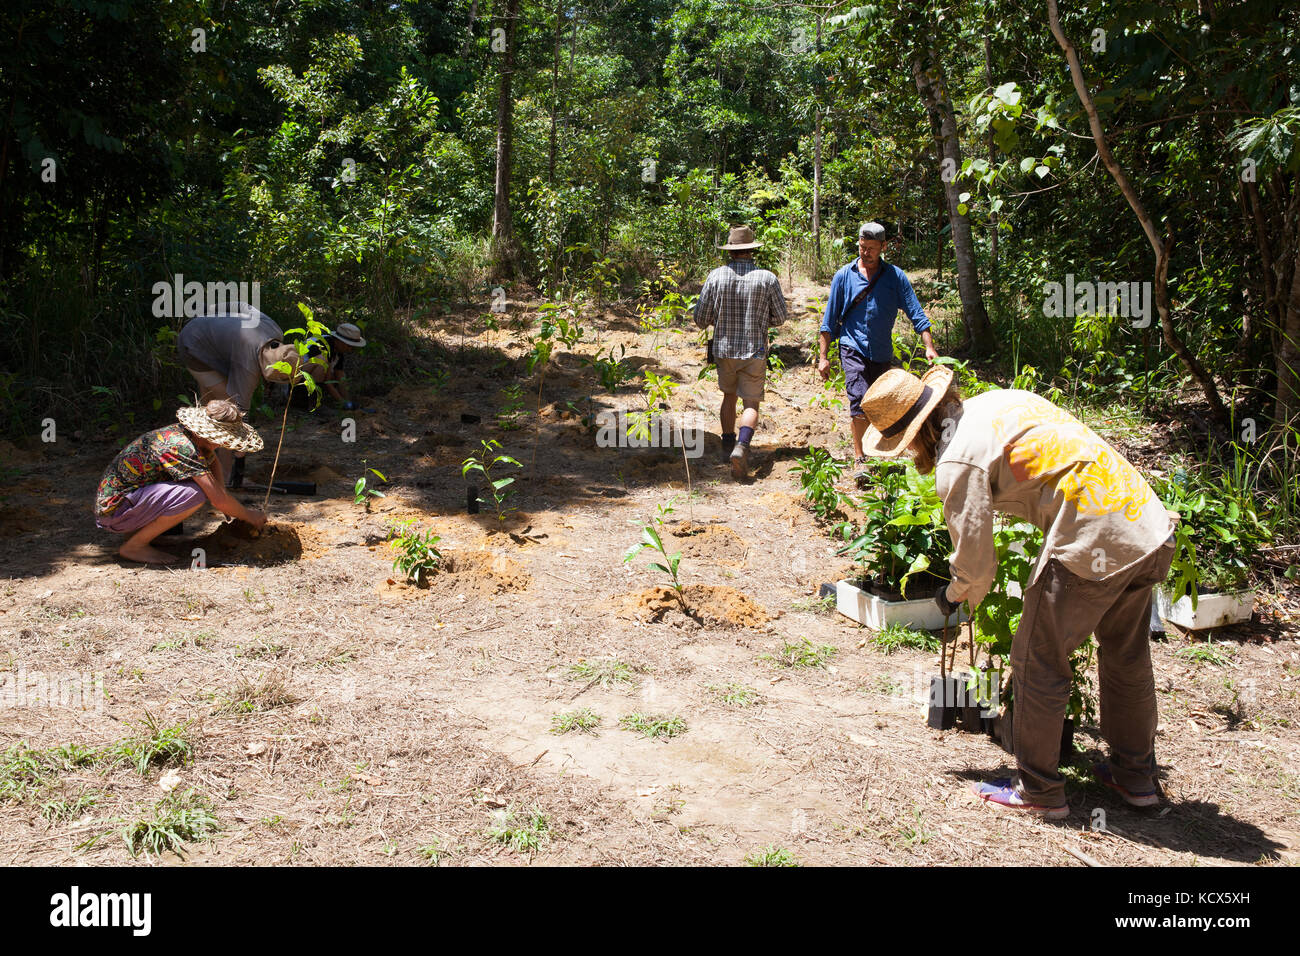 Human growth stages stock photos human growth stages for Diwan queensland